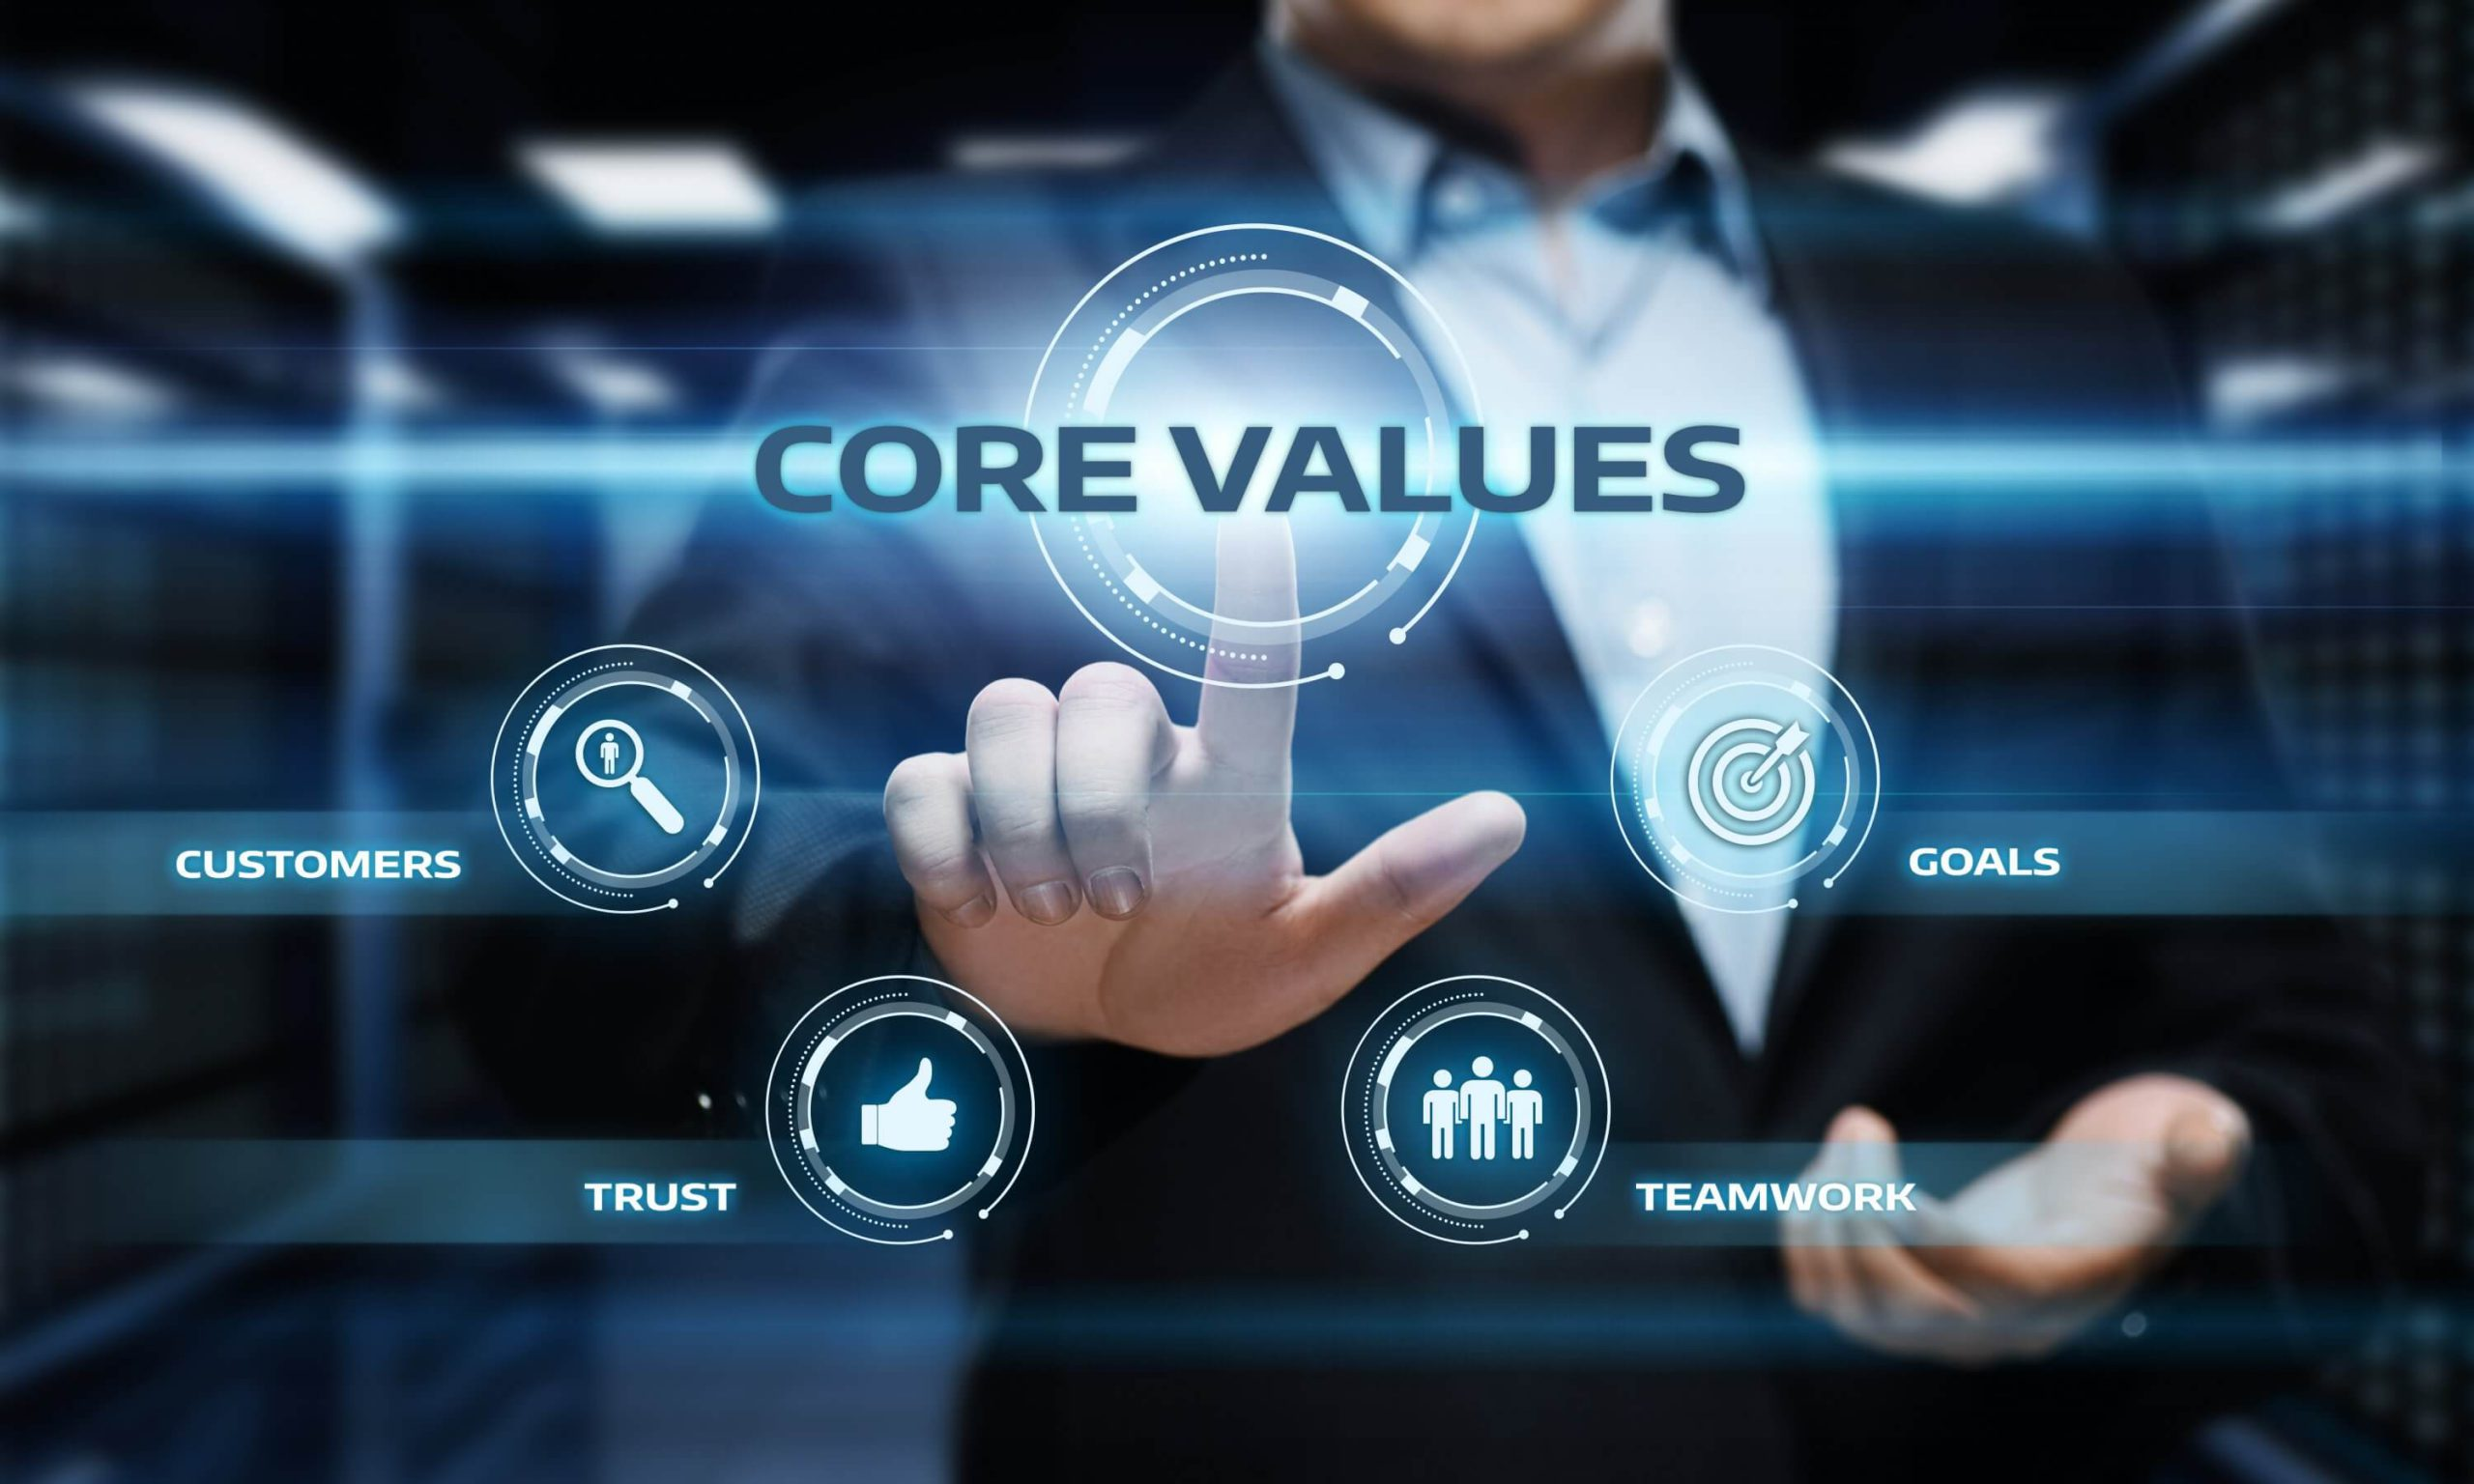 Pointing towards centre - Business vision mission and values